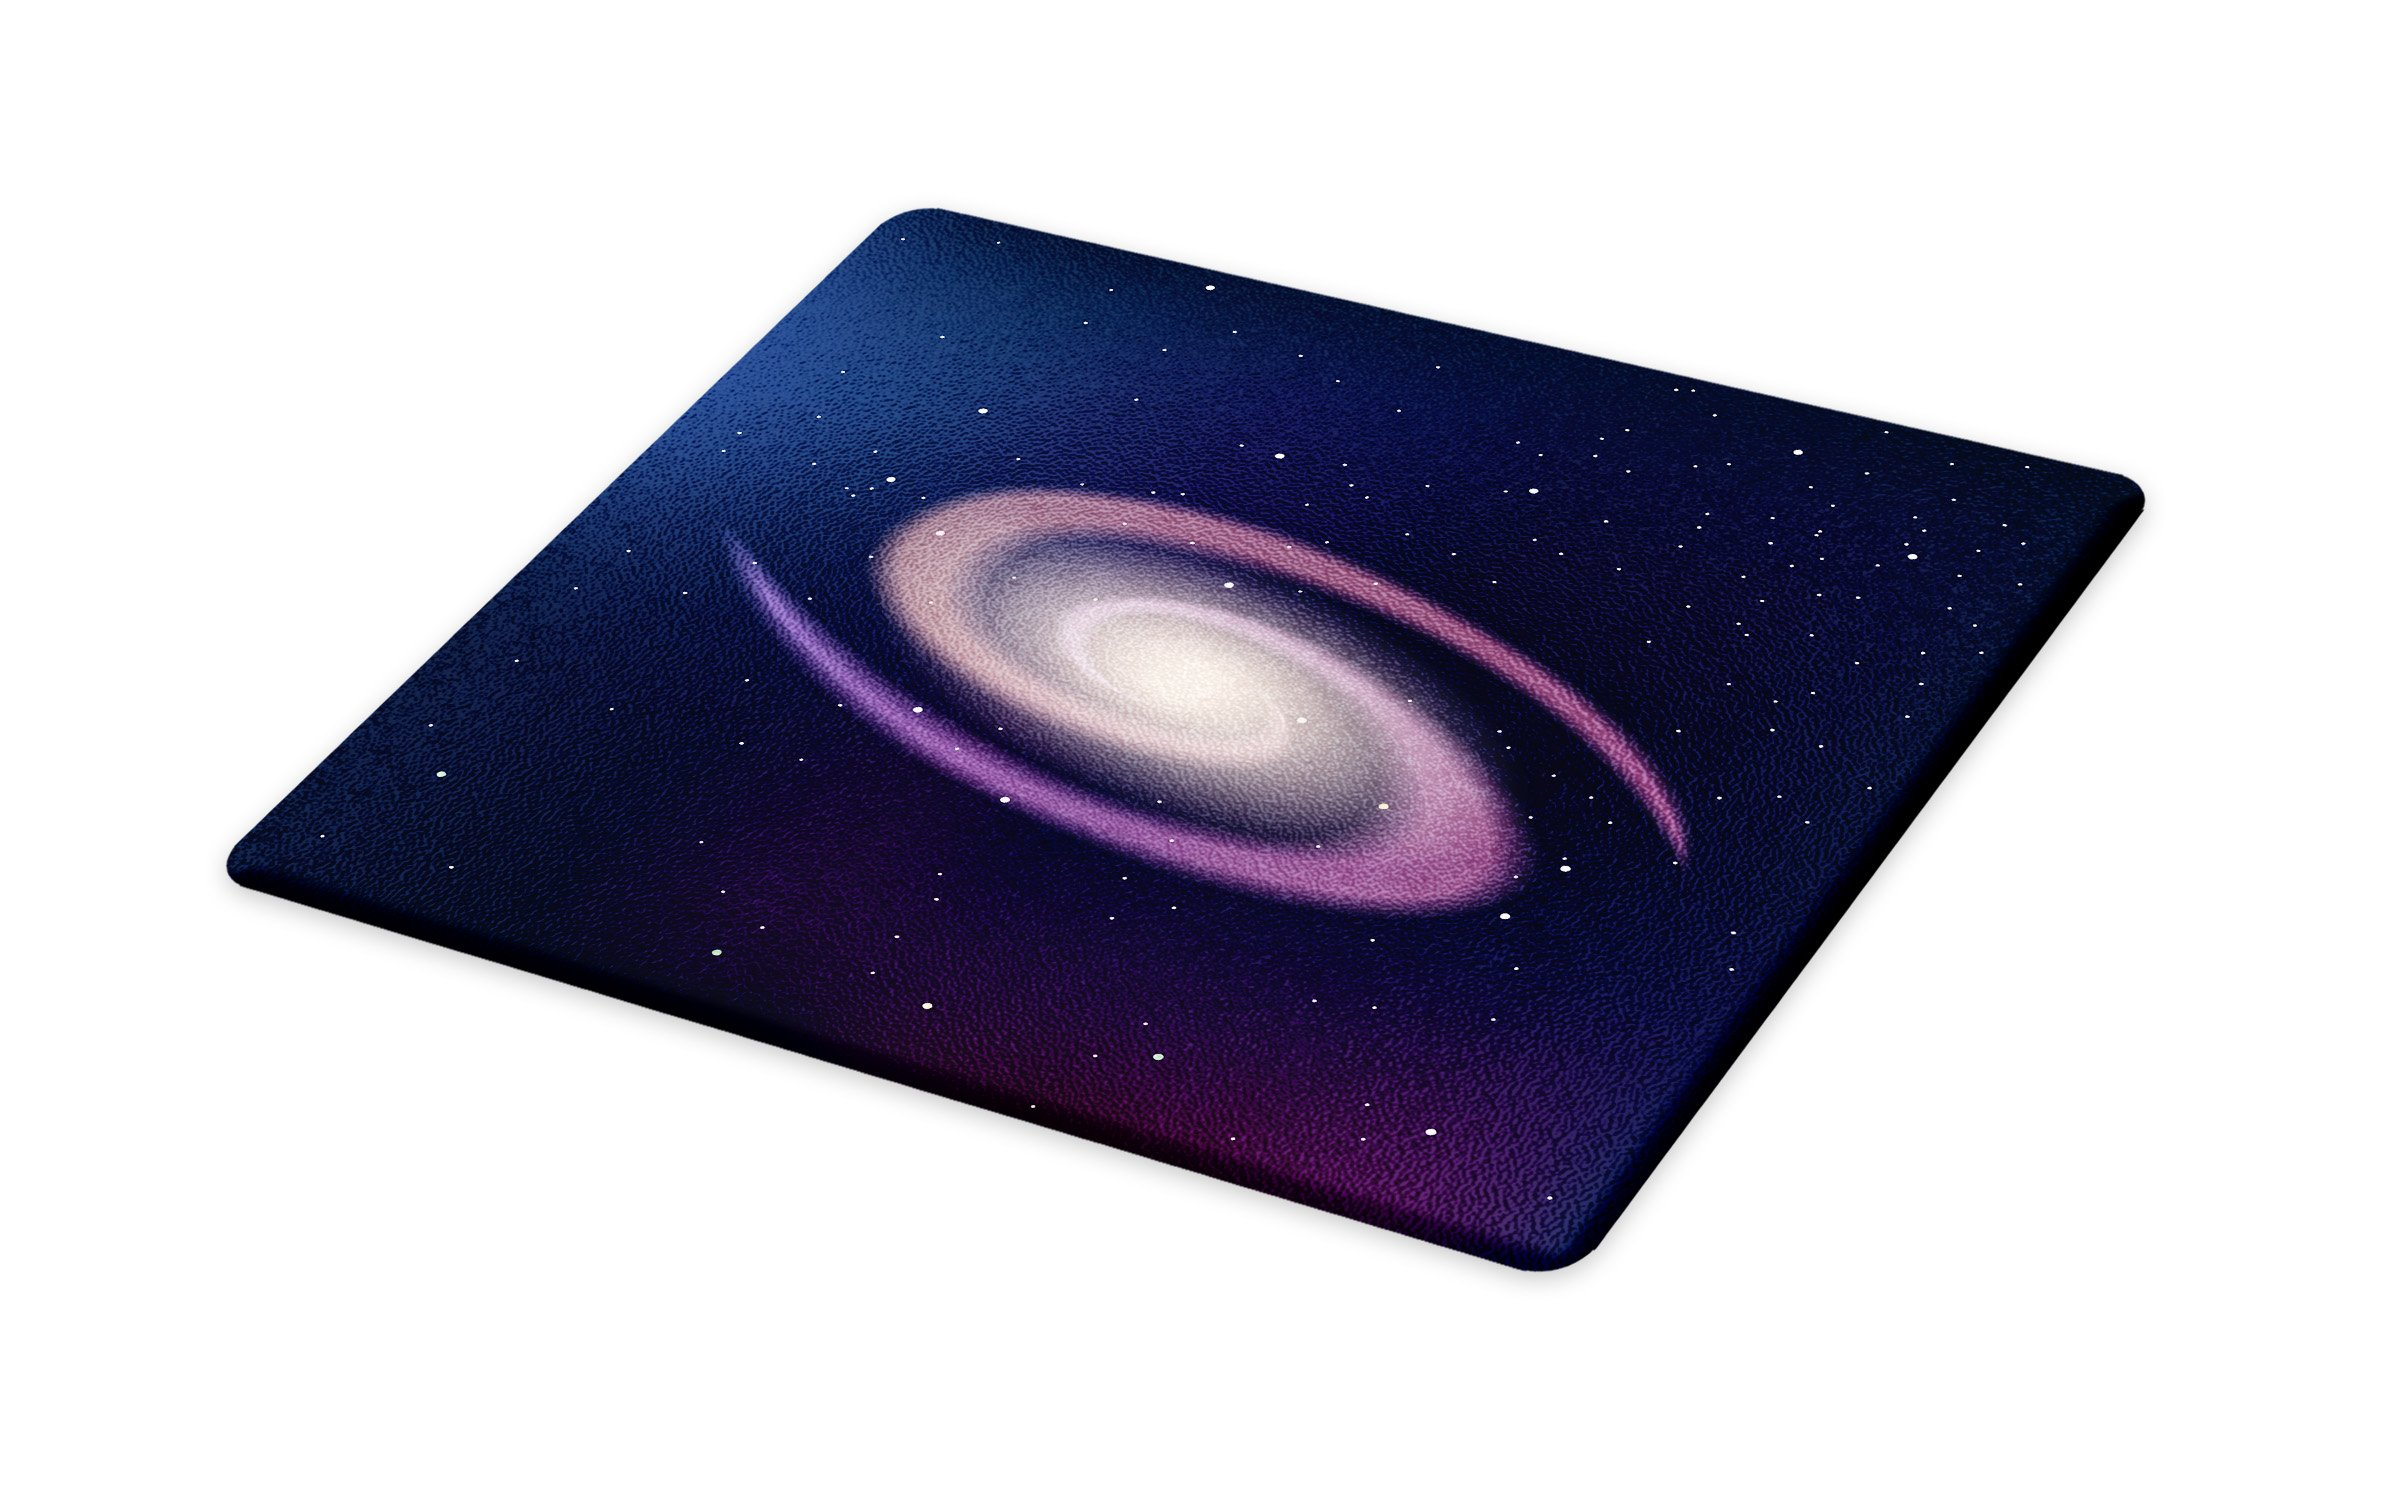 Lunarable Nebula Cutting Board, Solar System with Star in Middle Spiral Composition Expanding Universe, Decorative Tempered Glass Cutting and Serving Board, Large Size, Dark Blue Pale Pink